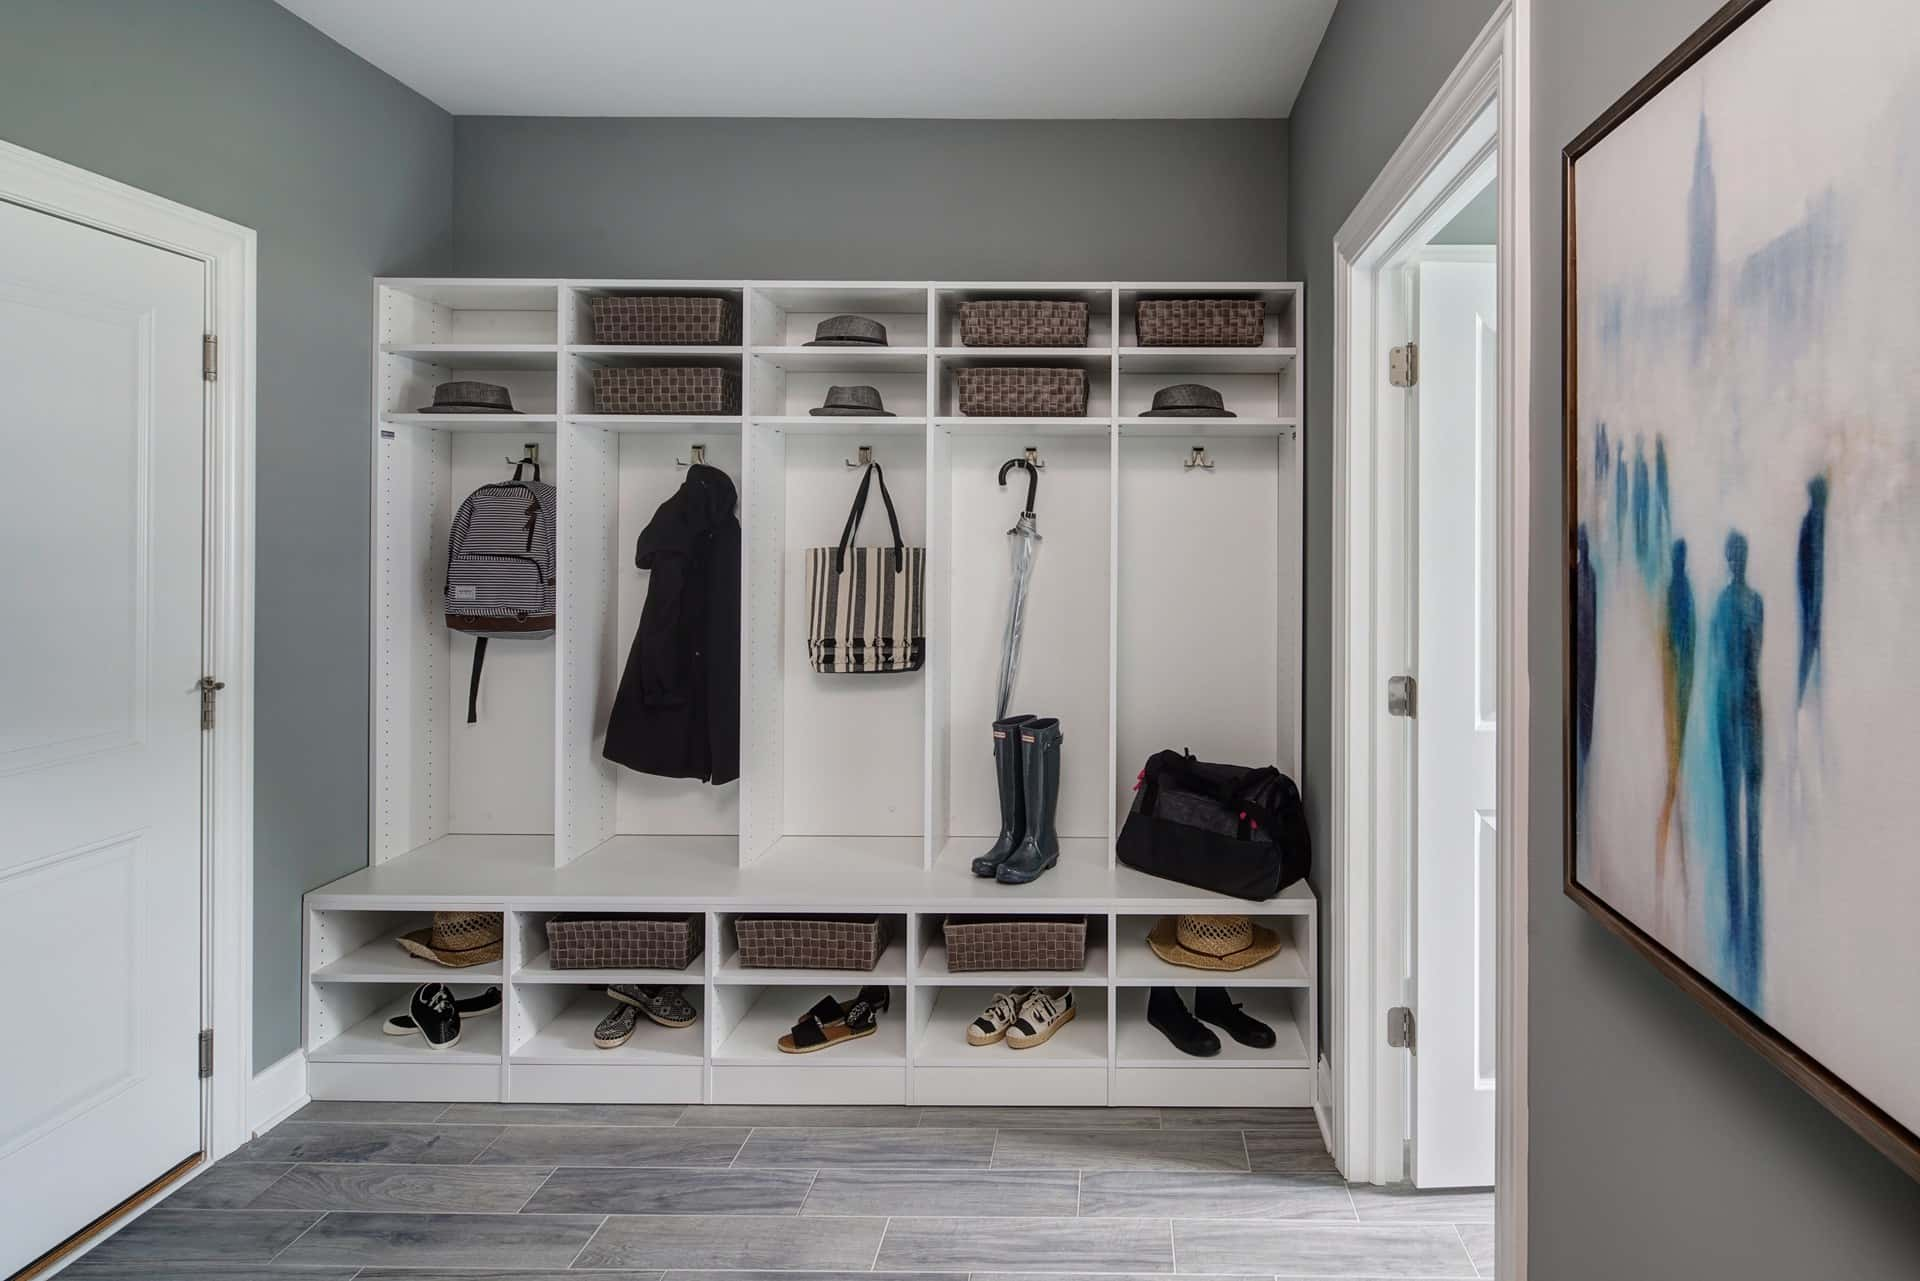 A mudroom with white cubbies and shelves and gray tile flooring in a new home by Lexington Homes at Lexington Towne at Arlington Heights in Arlington Heights, Ill.